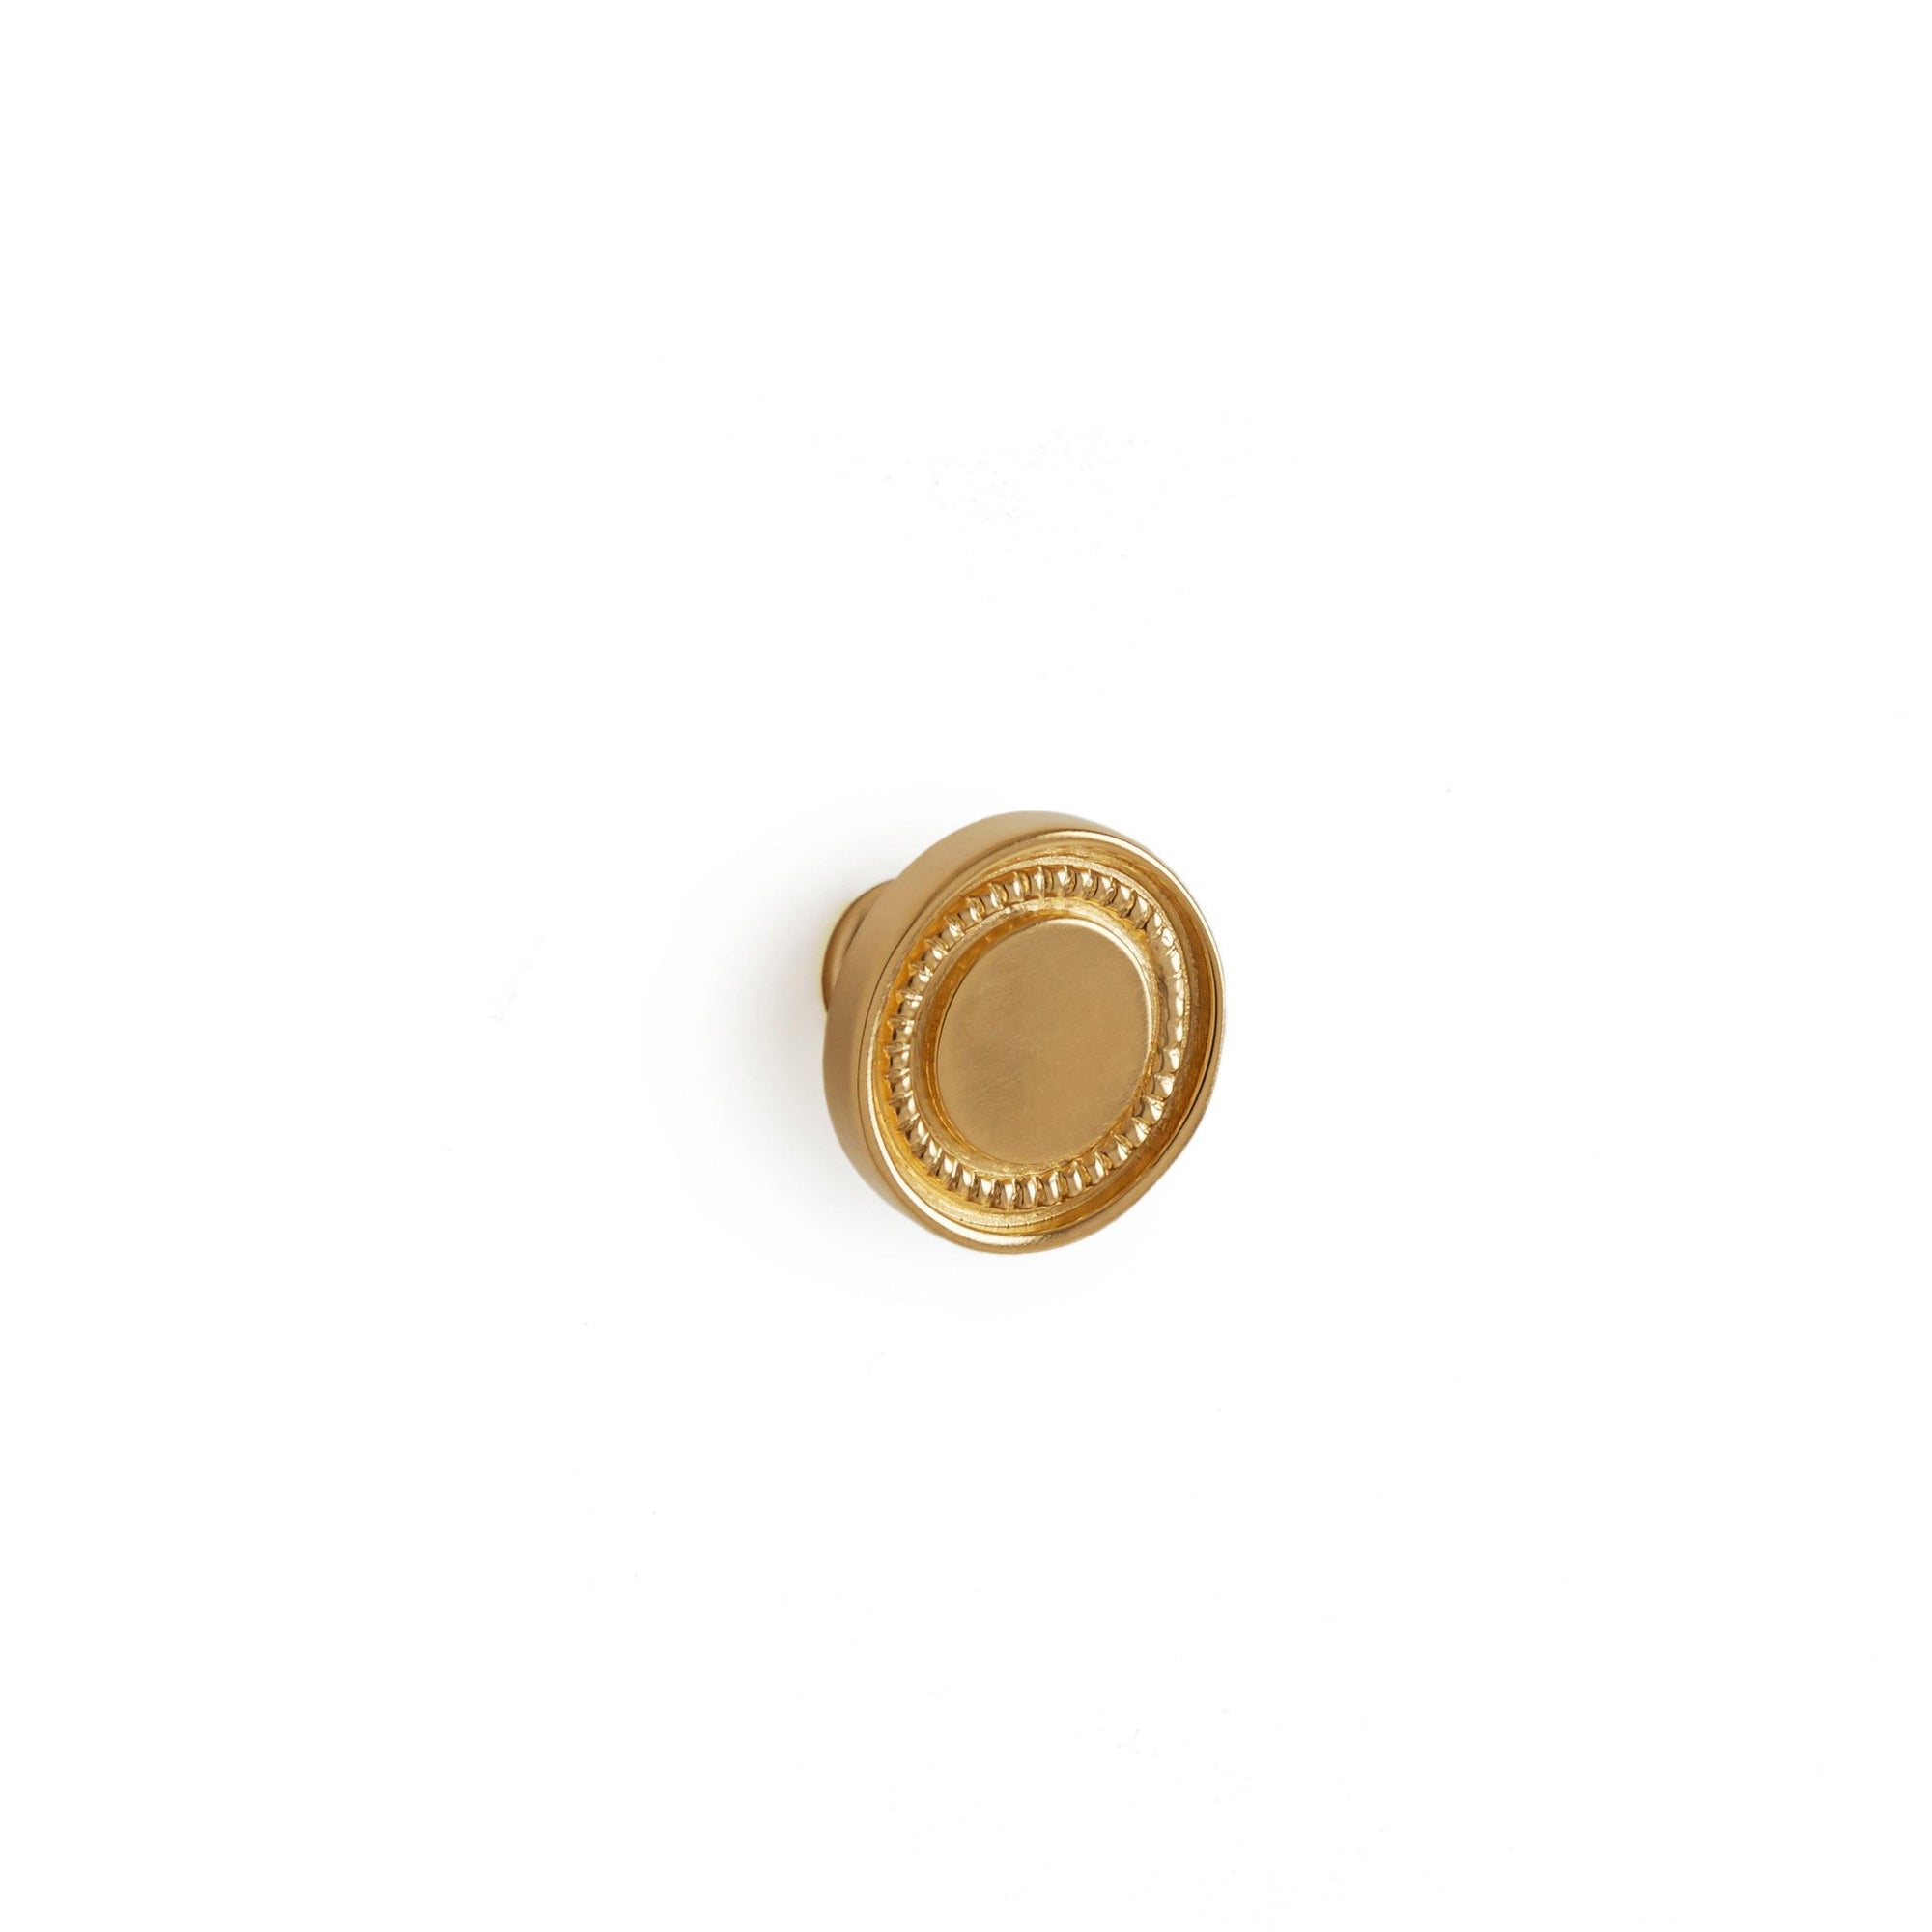 1033-1-GP Sherle Wagner International Concentric Circles Small Cabinet & Drawer Knob in Gold Plate metal finish